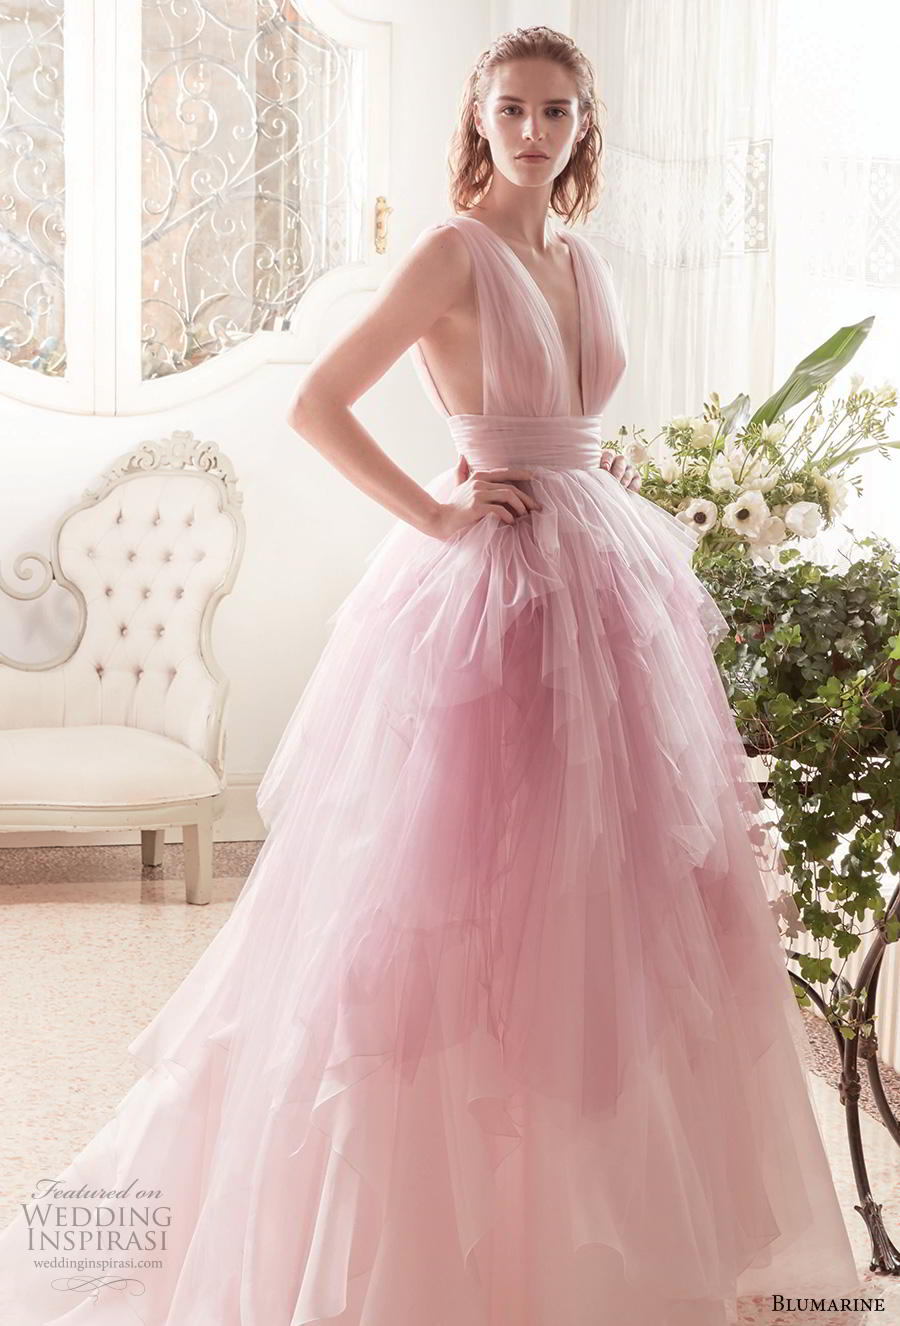 blumarine sposa 2019 bridal sleeveless deep v neck ruched bodice tiered tulle skirt romantic pink blush wedding dress v back chapel train (12) mv